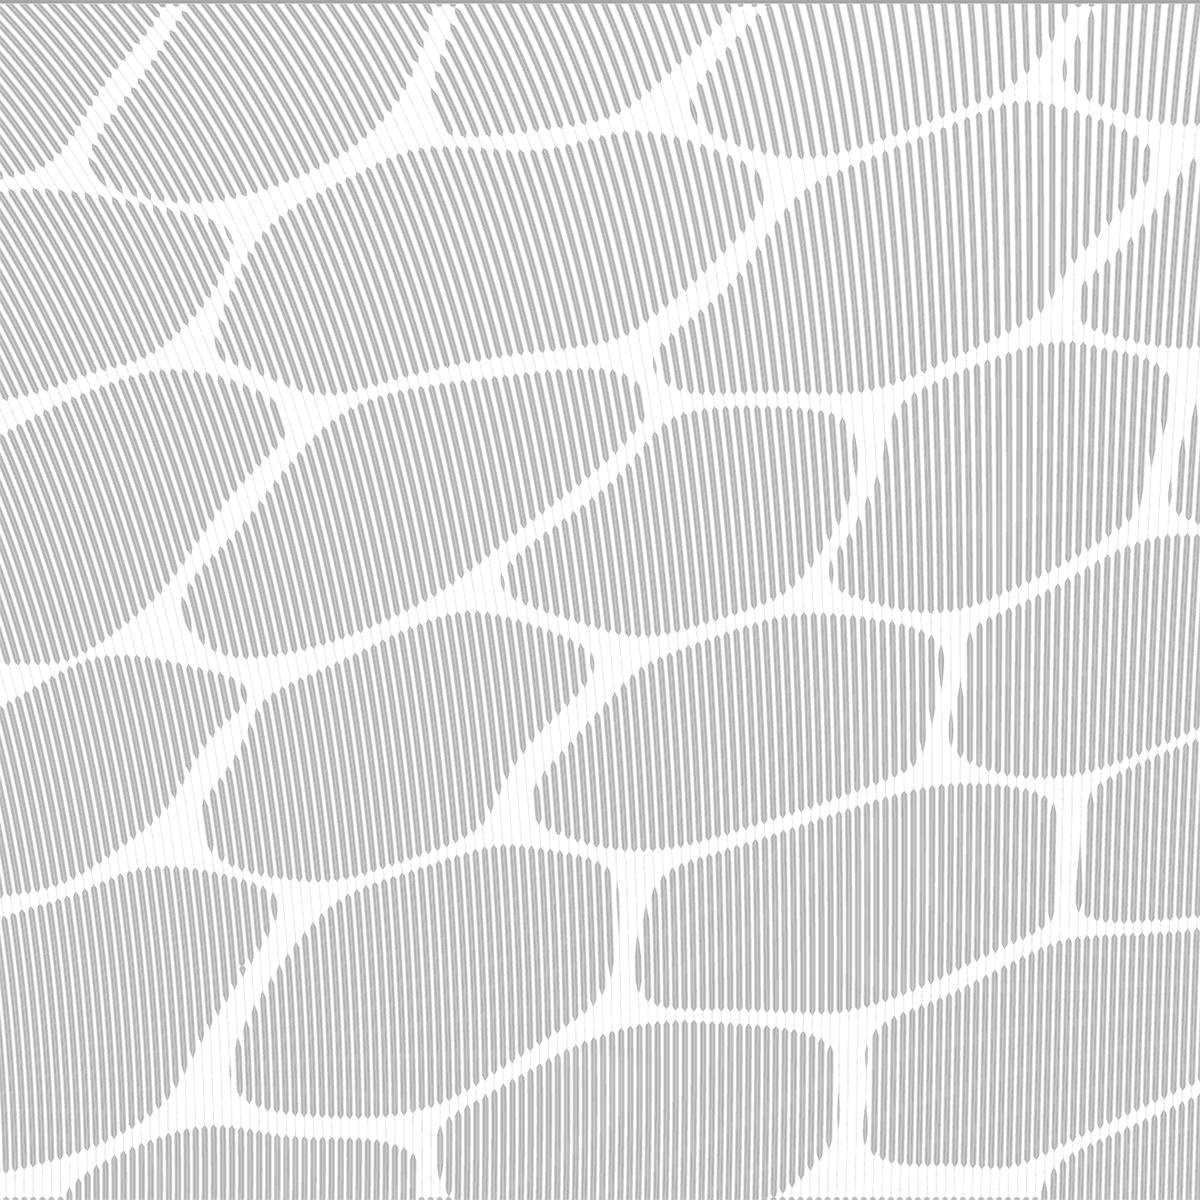 corian textured surfaces mitch cass nature collection cellular line drawing